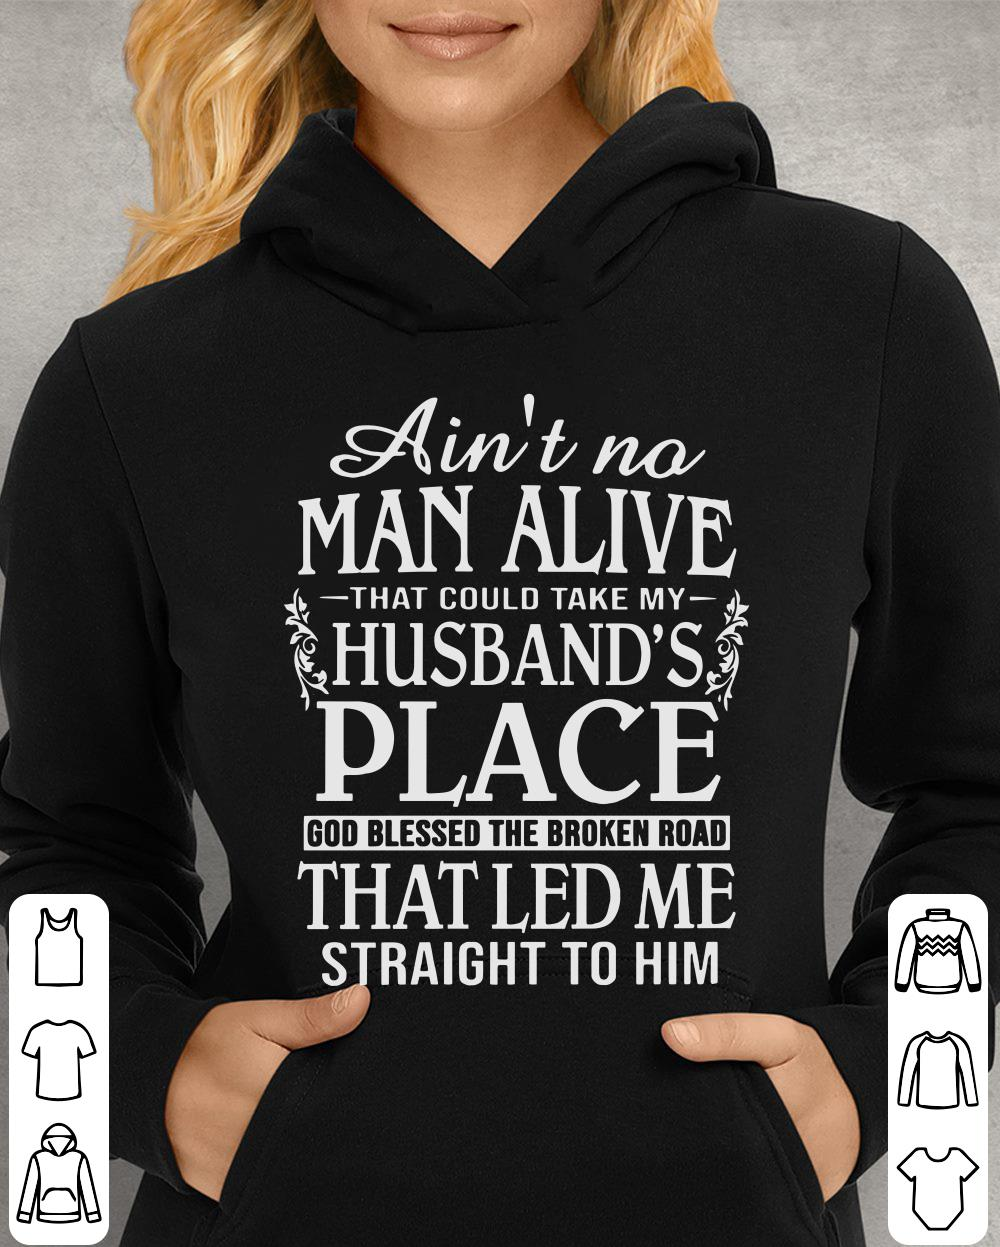 https://unicornshirts.net/images/2019/01/Ain-t-no-man-alive-that-could-take-my-husband-s-place-god-blessed-the-broken-road-that-led-me-straight-to-him-shirt_4.jpg